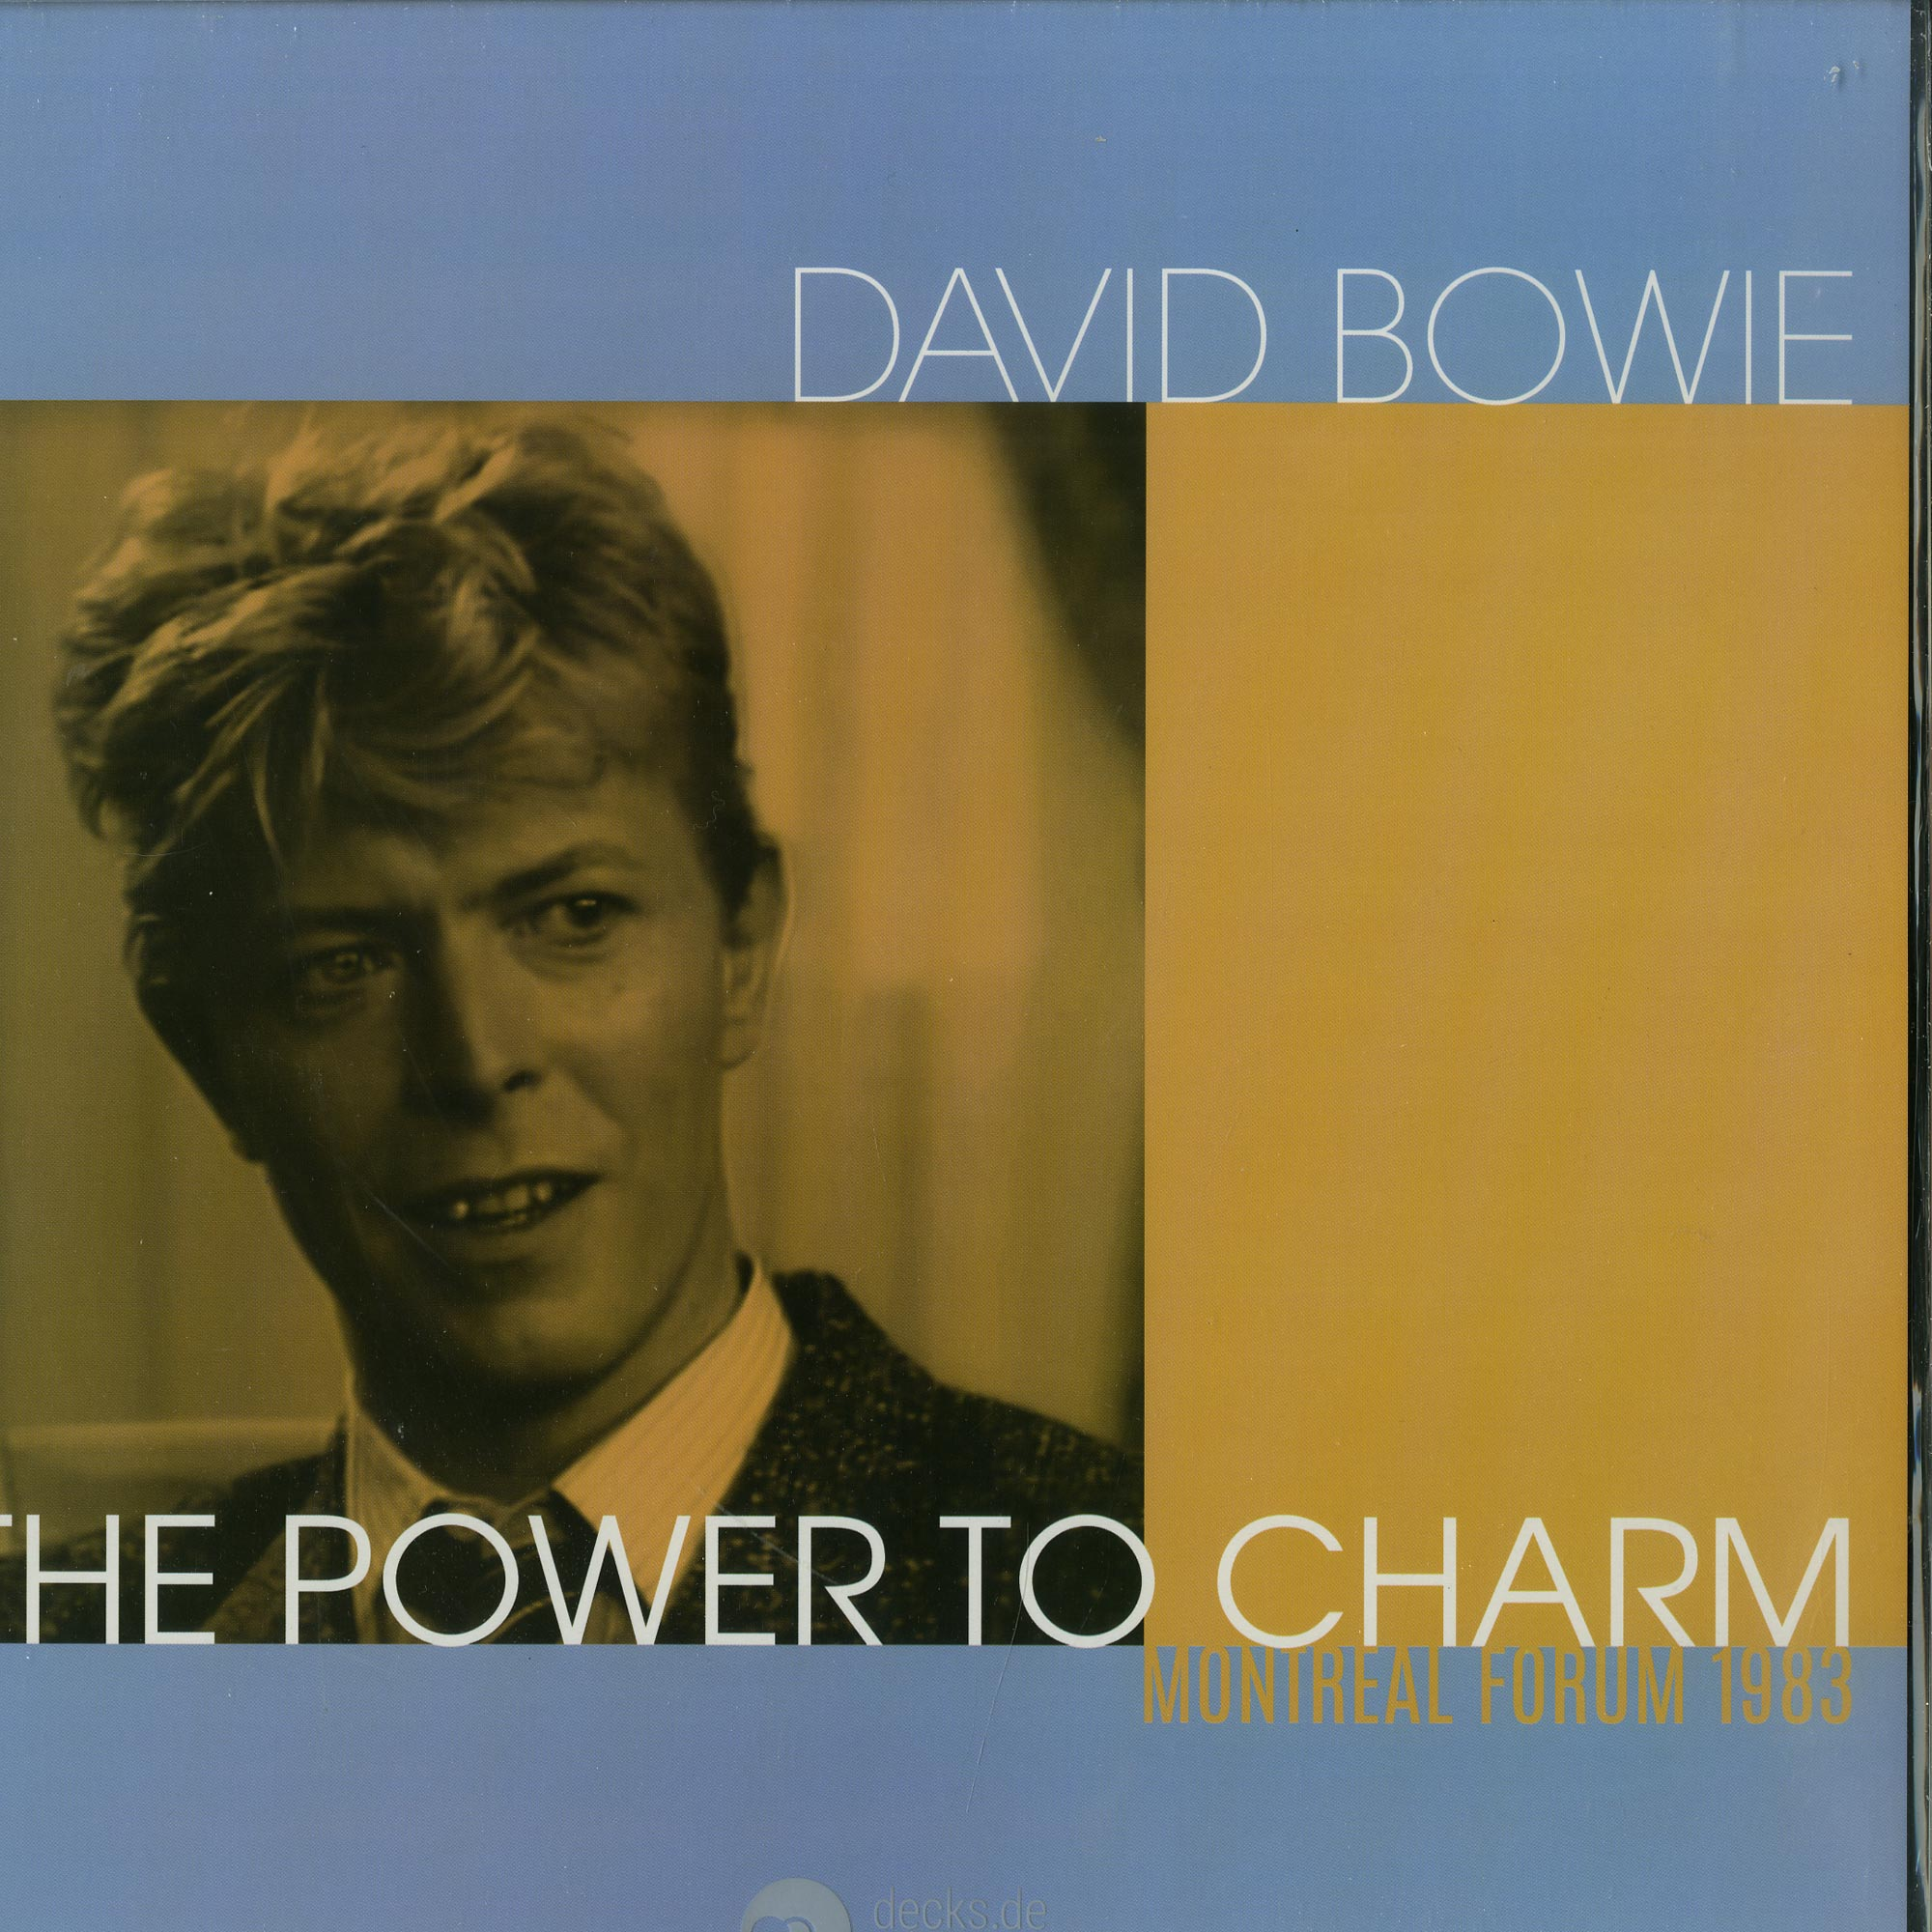 David Bowie - THE POWER TO CHARM